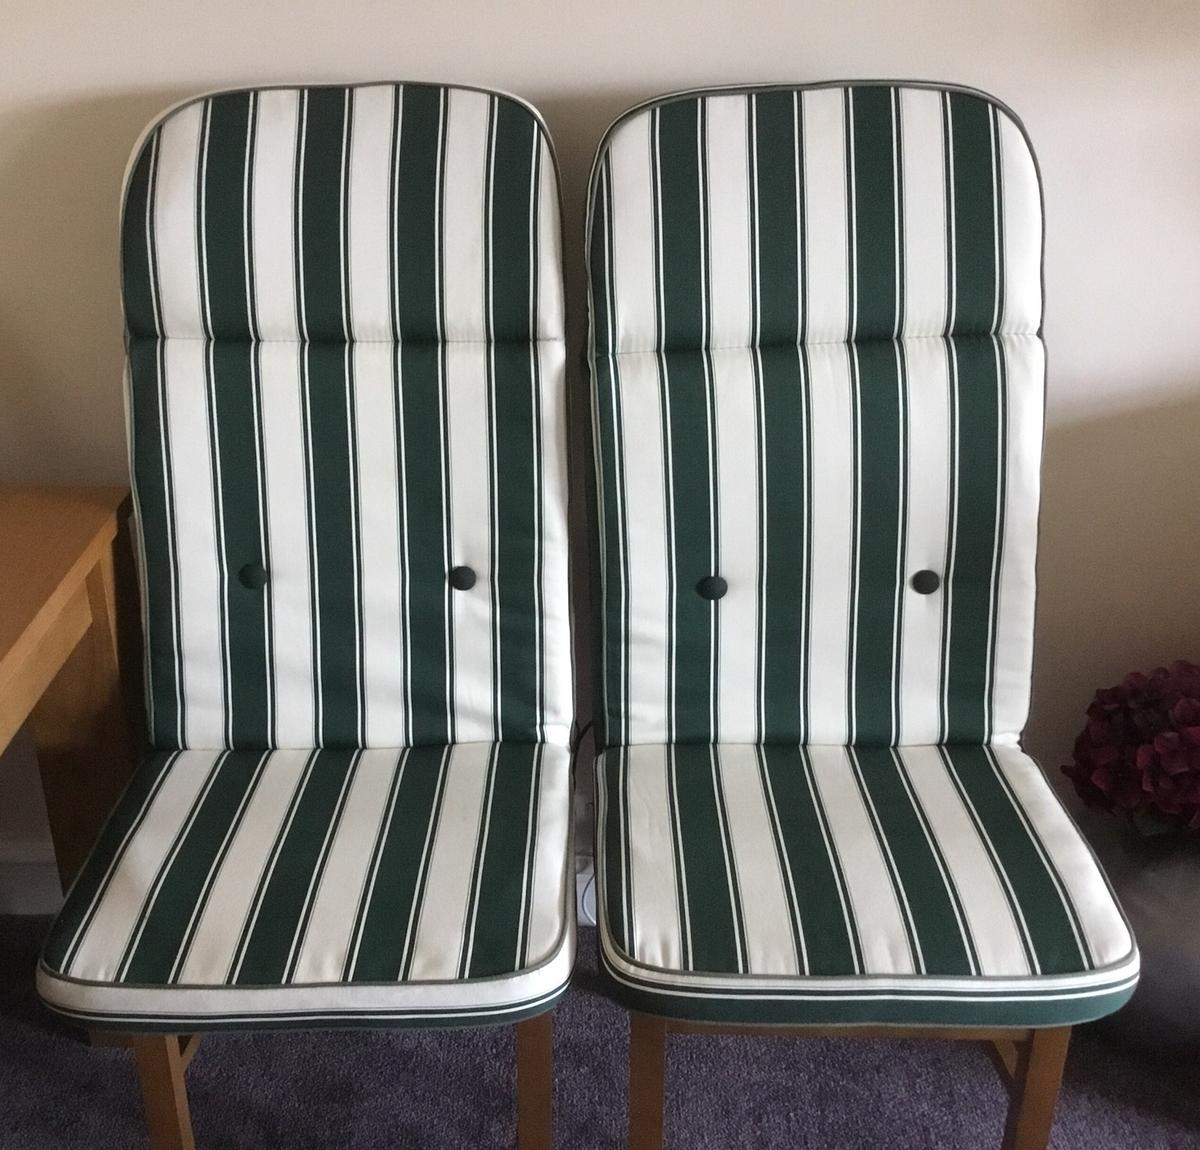 Two Green White Garden Chair Cushions